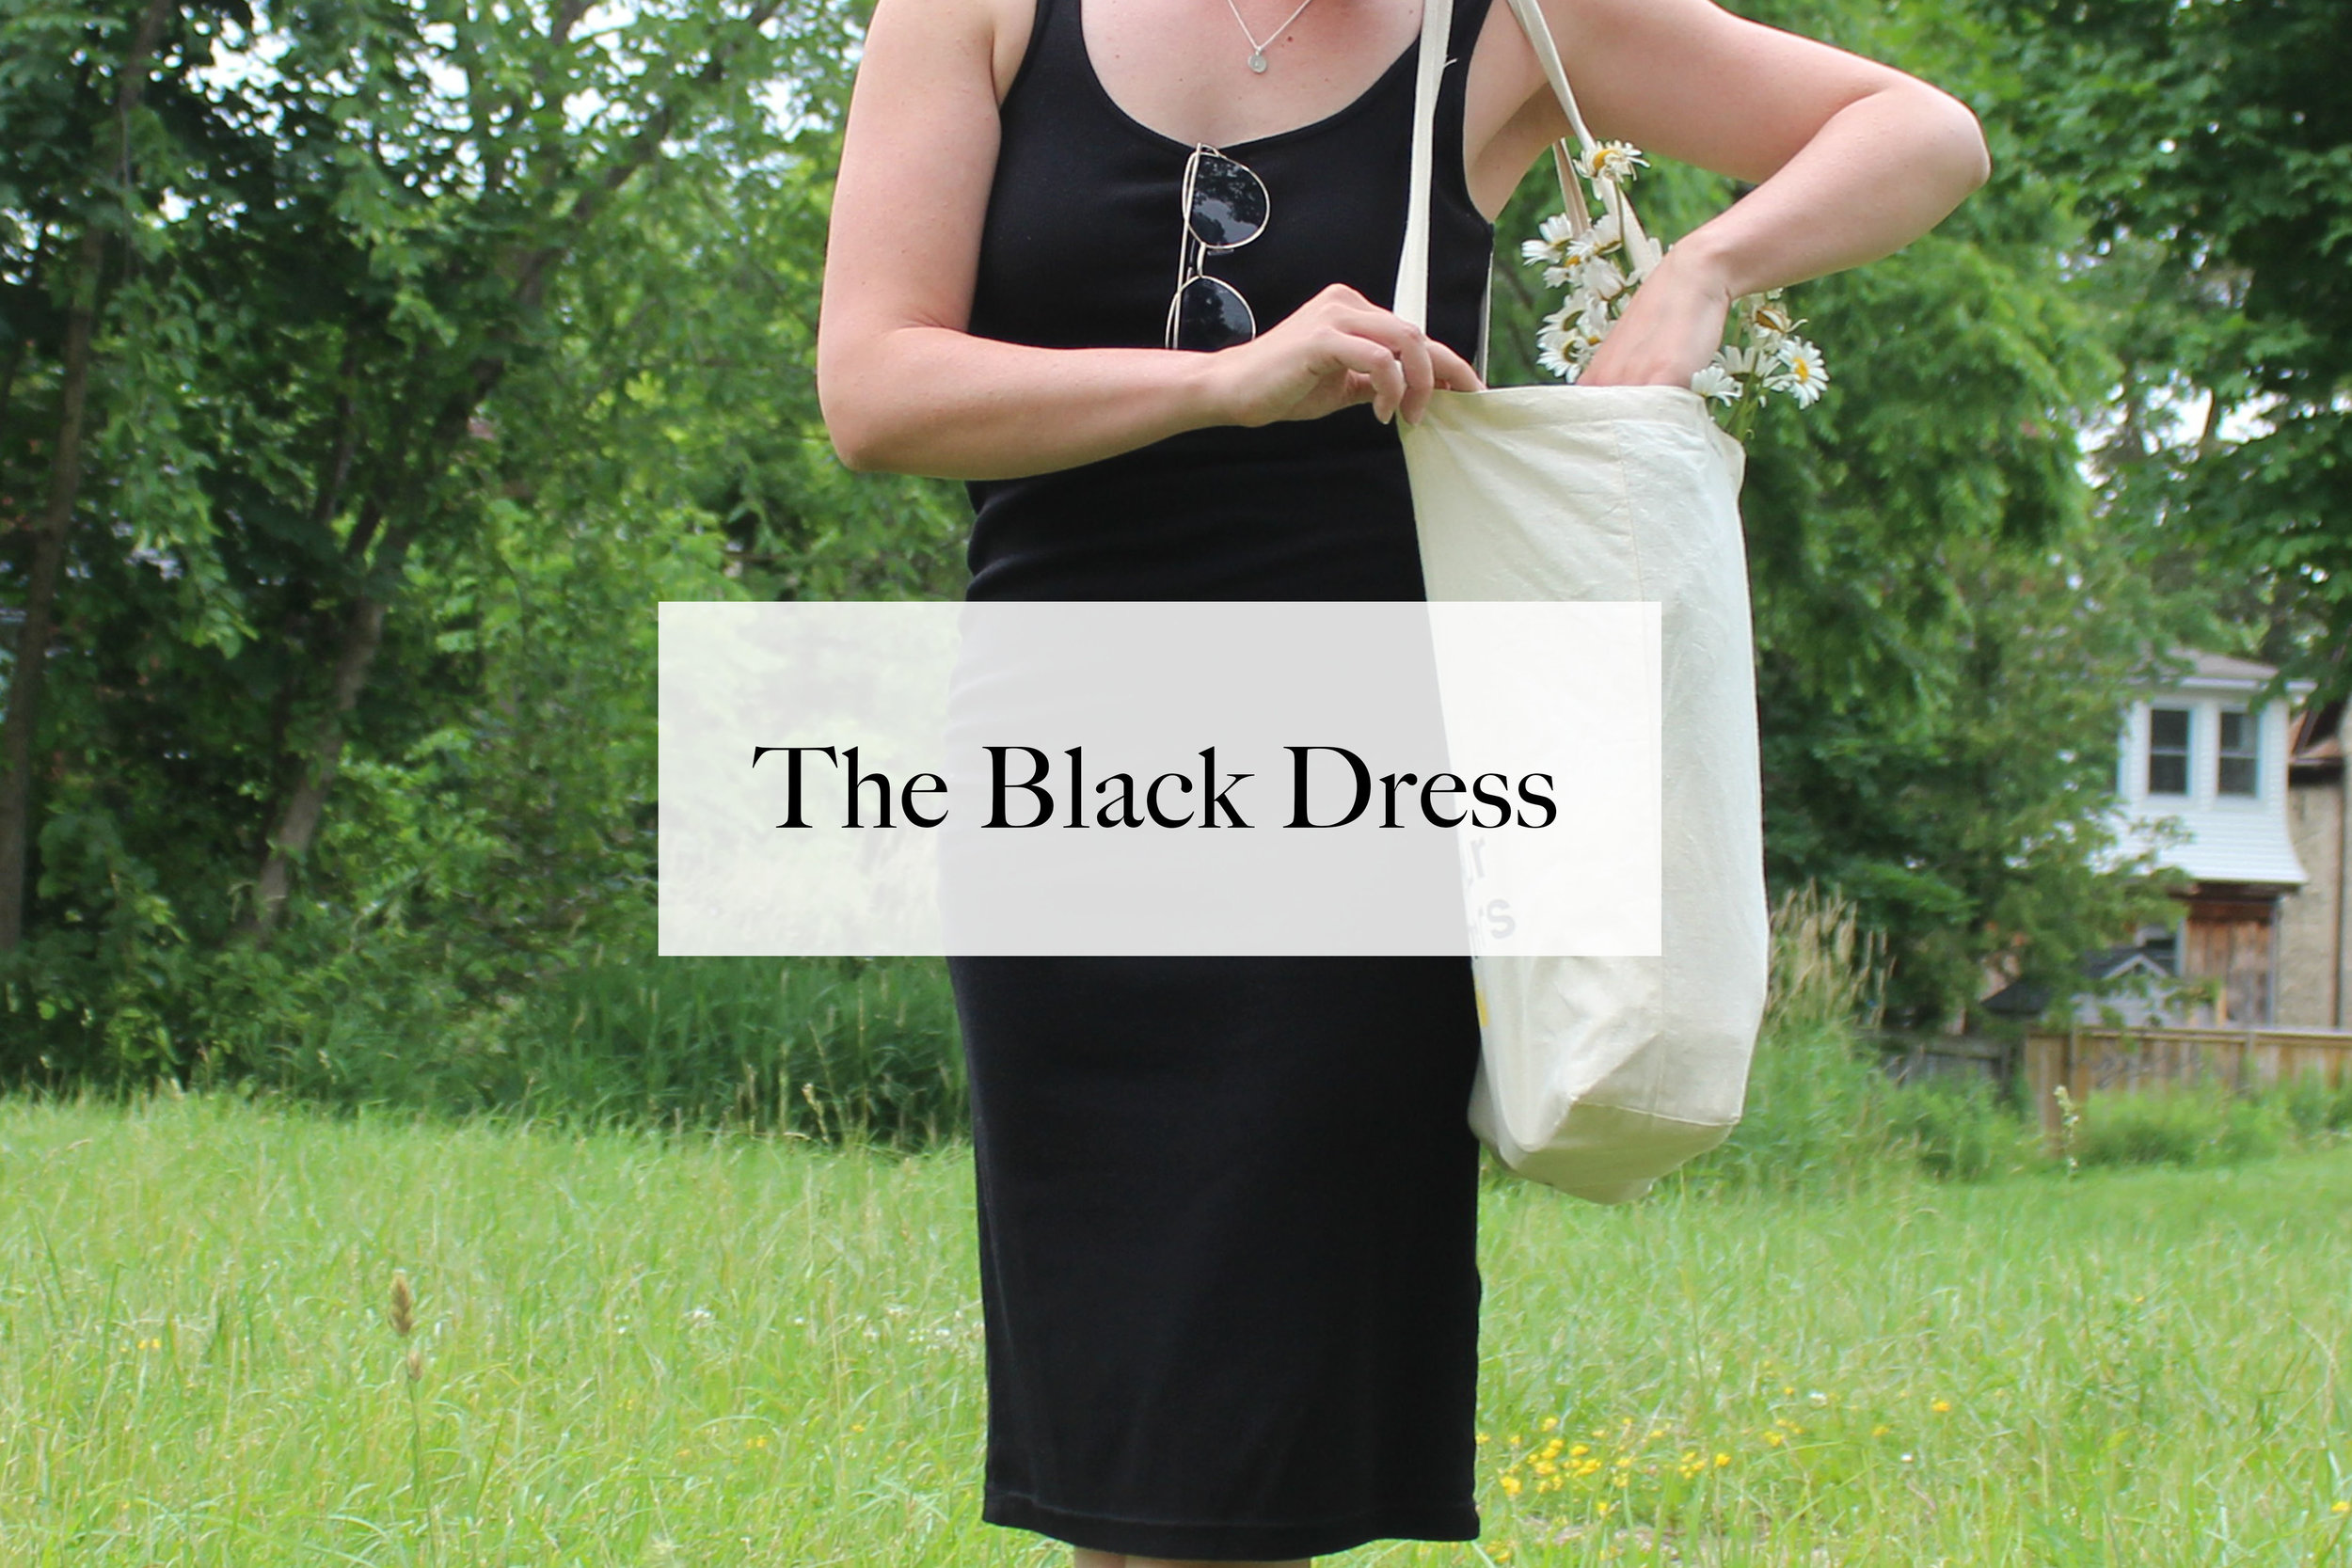 thelittleblackdress.jpg